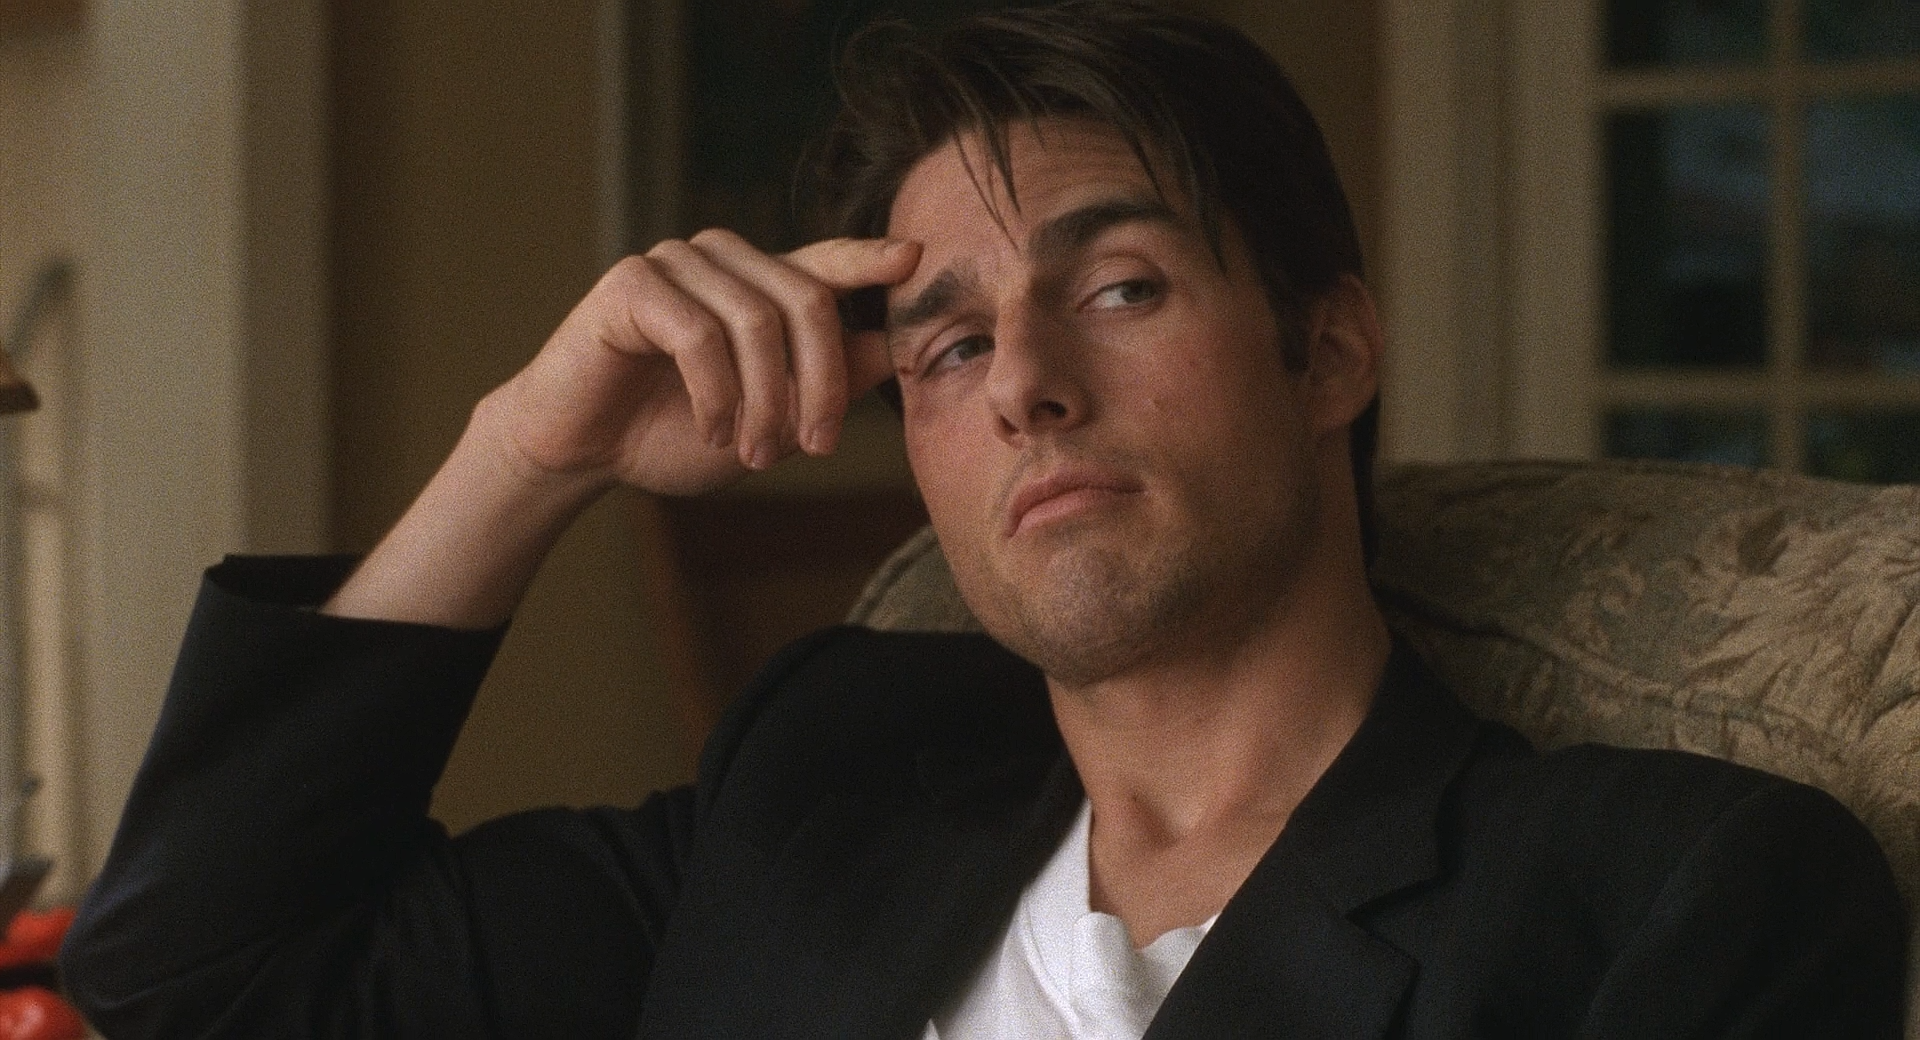 jerry maguire Quotes jerry maguire: what's up bob sugar: i came here to let you go jerry maguire: pardon bob sugar: i came here to fire you it's real, you should say something jerry maguire: in a crowded restaurant so i won't make a scene you ungrateful.